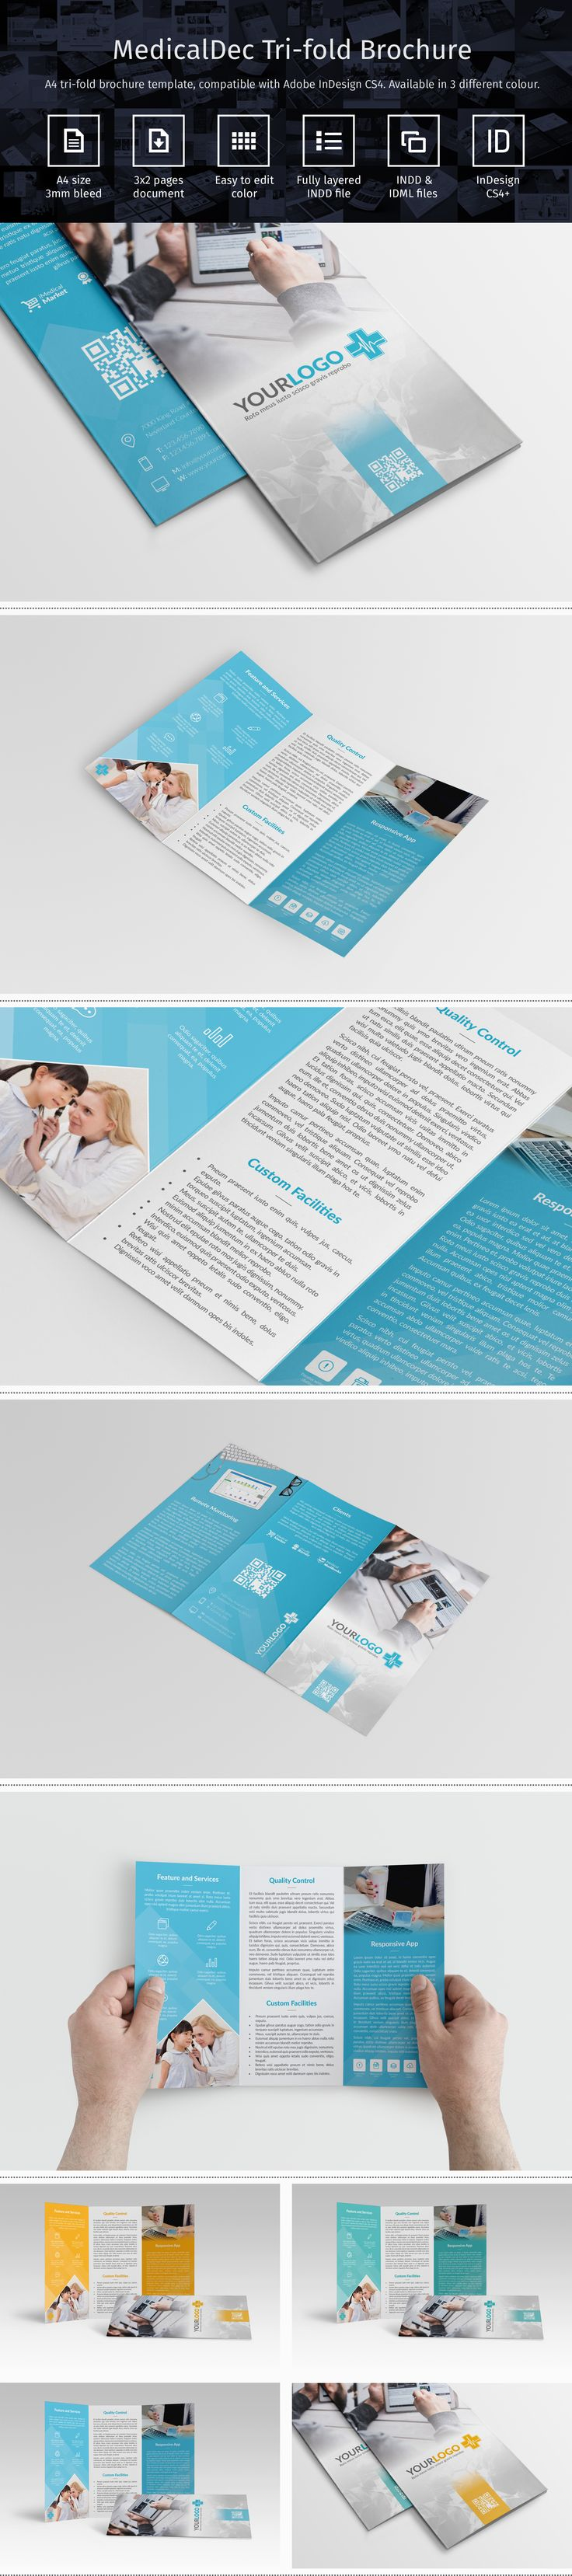 Modern tri-fold brochure template in three different color created with Adobe InDesign CS4. Suitable for medical service brochure such as hospital, clinic, and medical app development [http://goo.gl/iUHSkC].  #adobe #indesign #indd #idml #template #trifold #brochure #print #corporate #medical #hospital #clinic #health #formal #modern #flat #luxury #qrcode #freelogo #professional #business #icon #doctor #patient #a4 #design #colors #green #blue #yellow